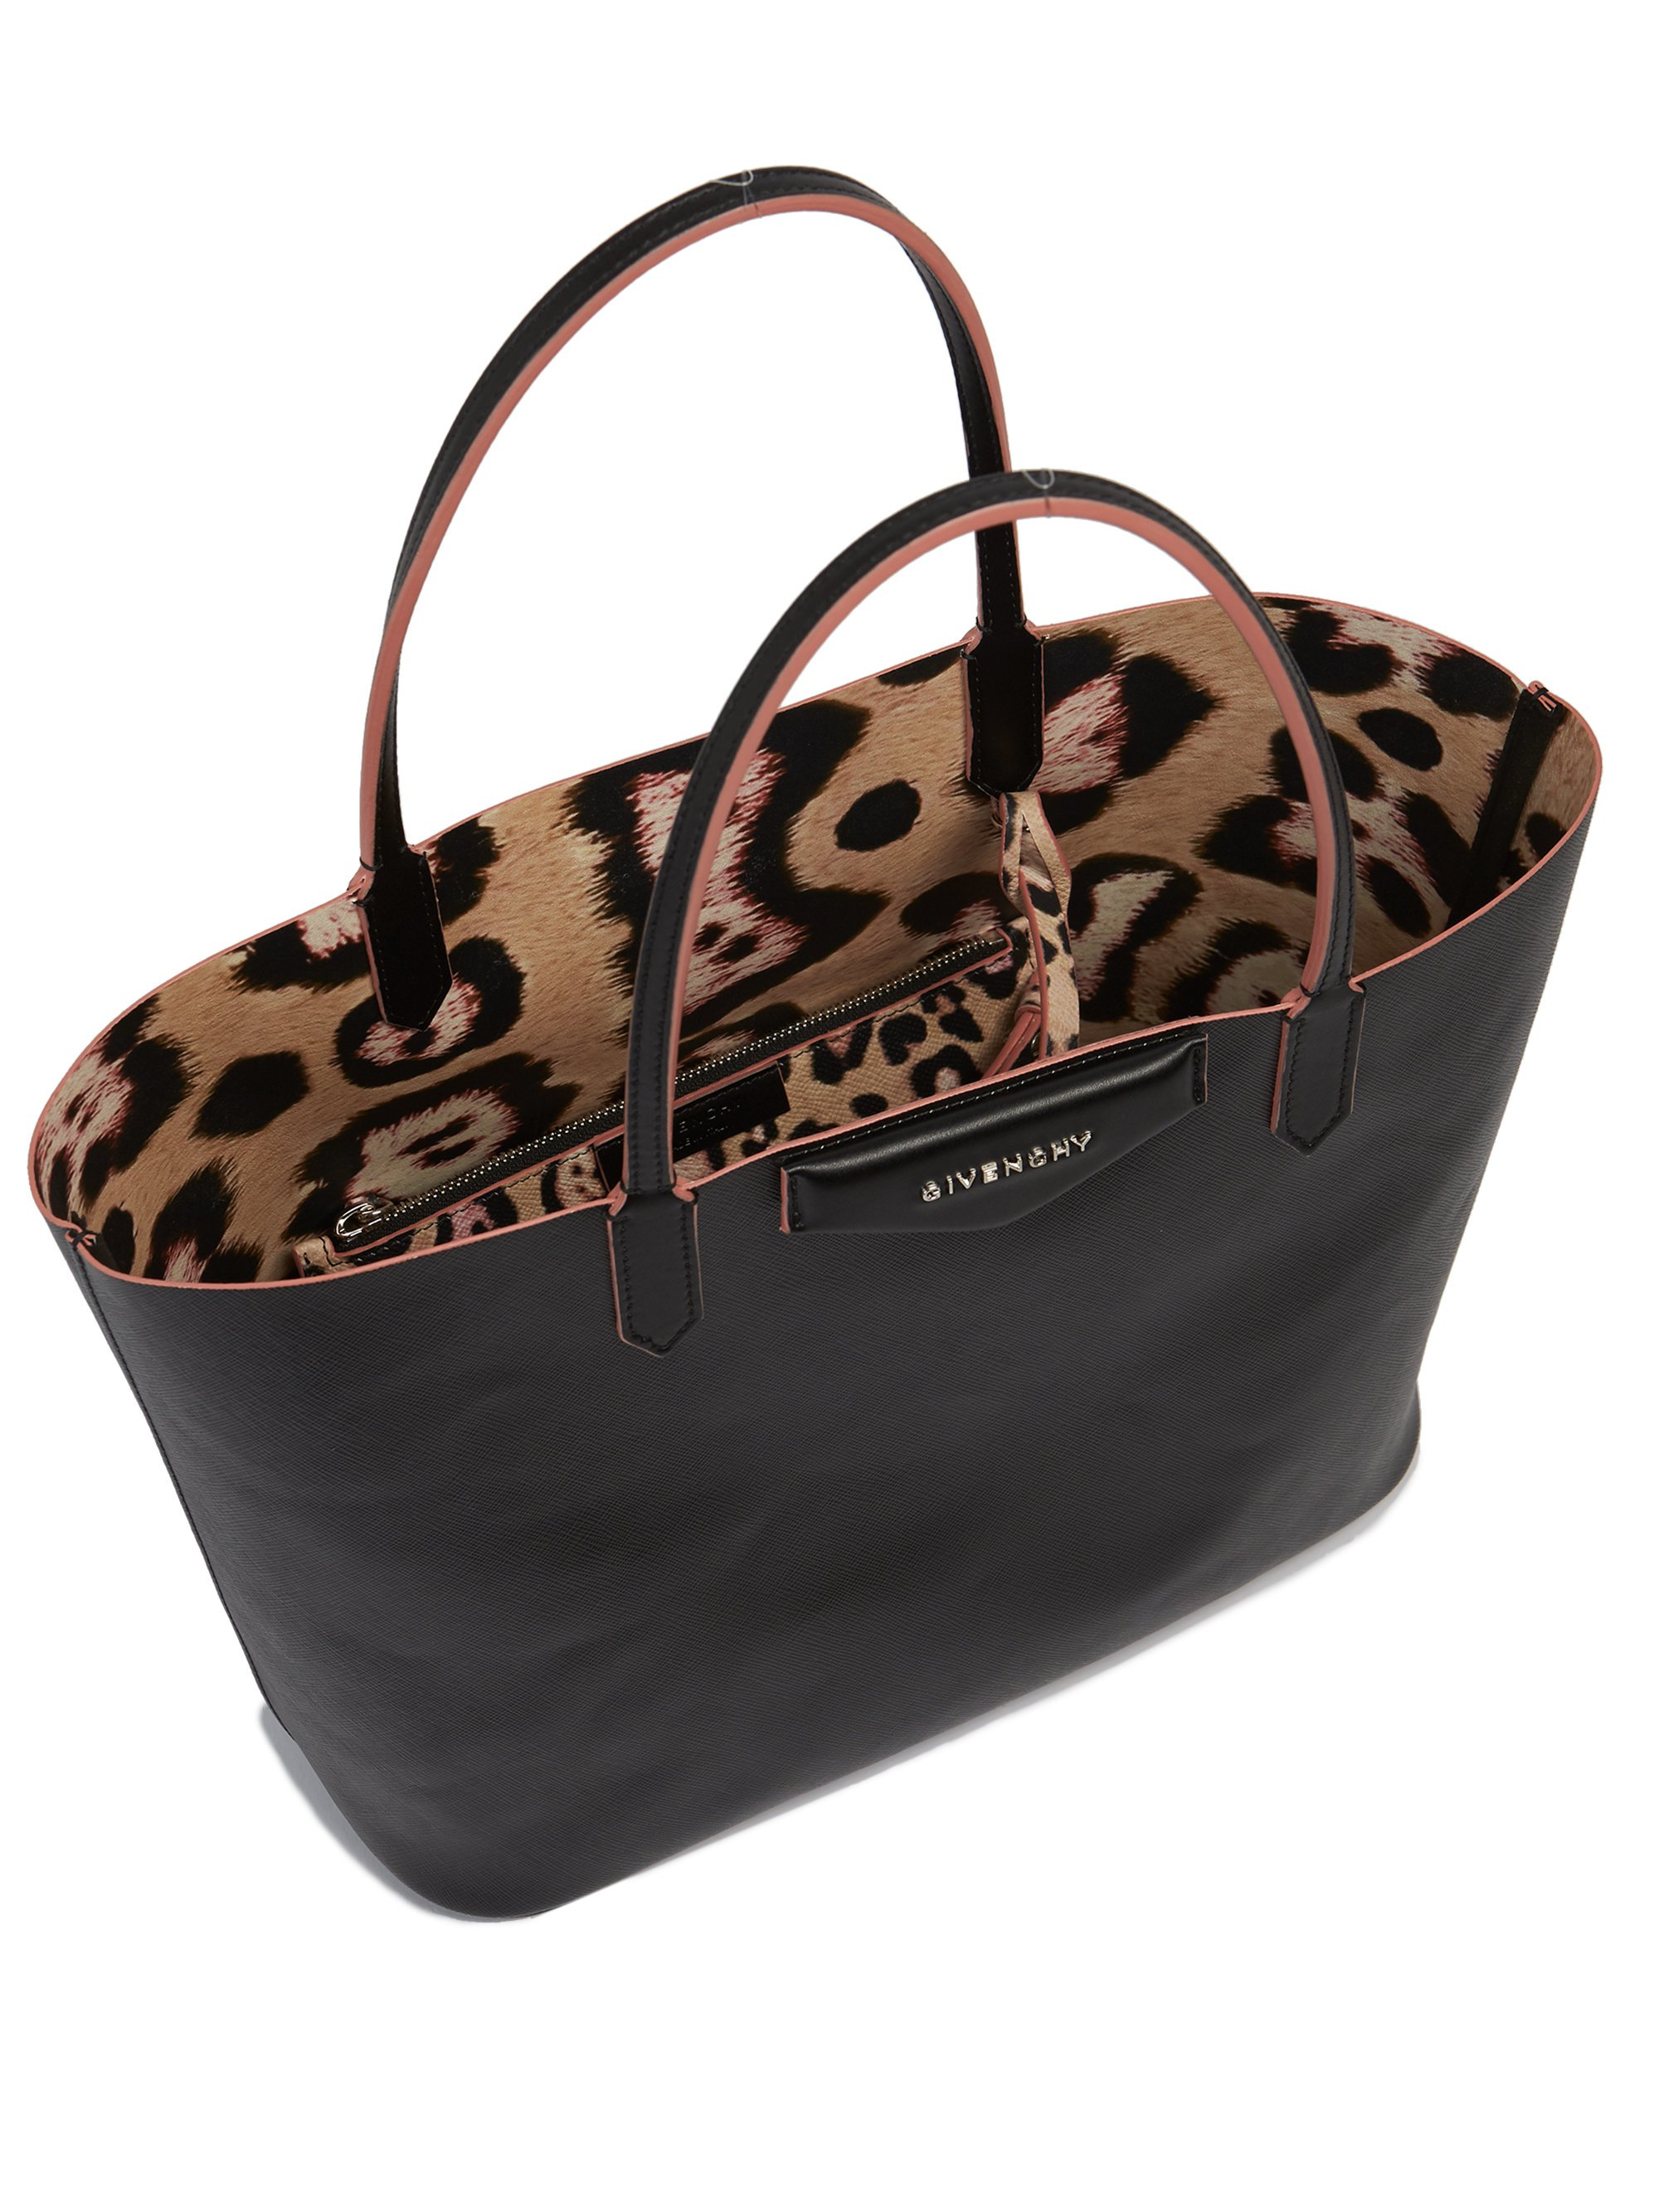 Lyst - Givenchy Antigona Small Coated Canvas Tote in Black 0bc029980a